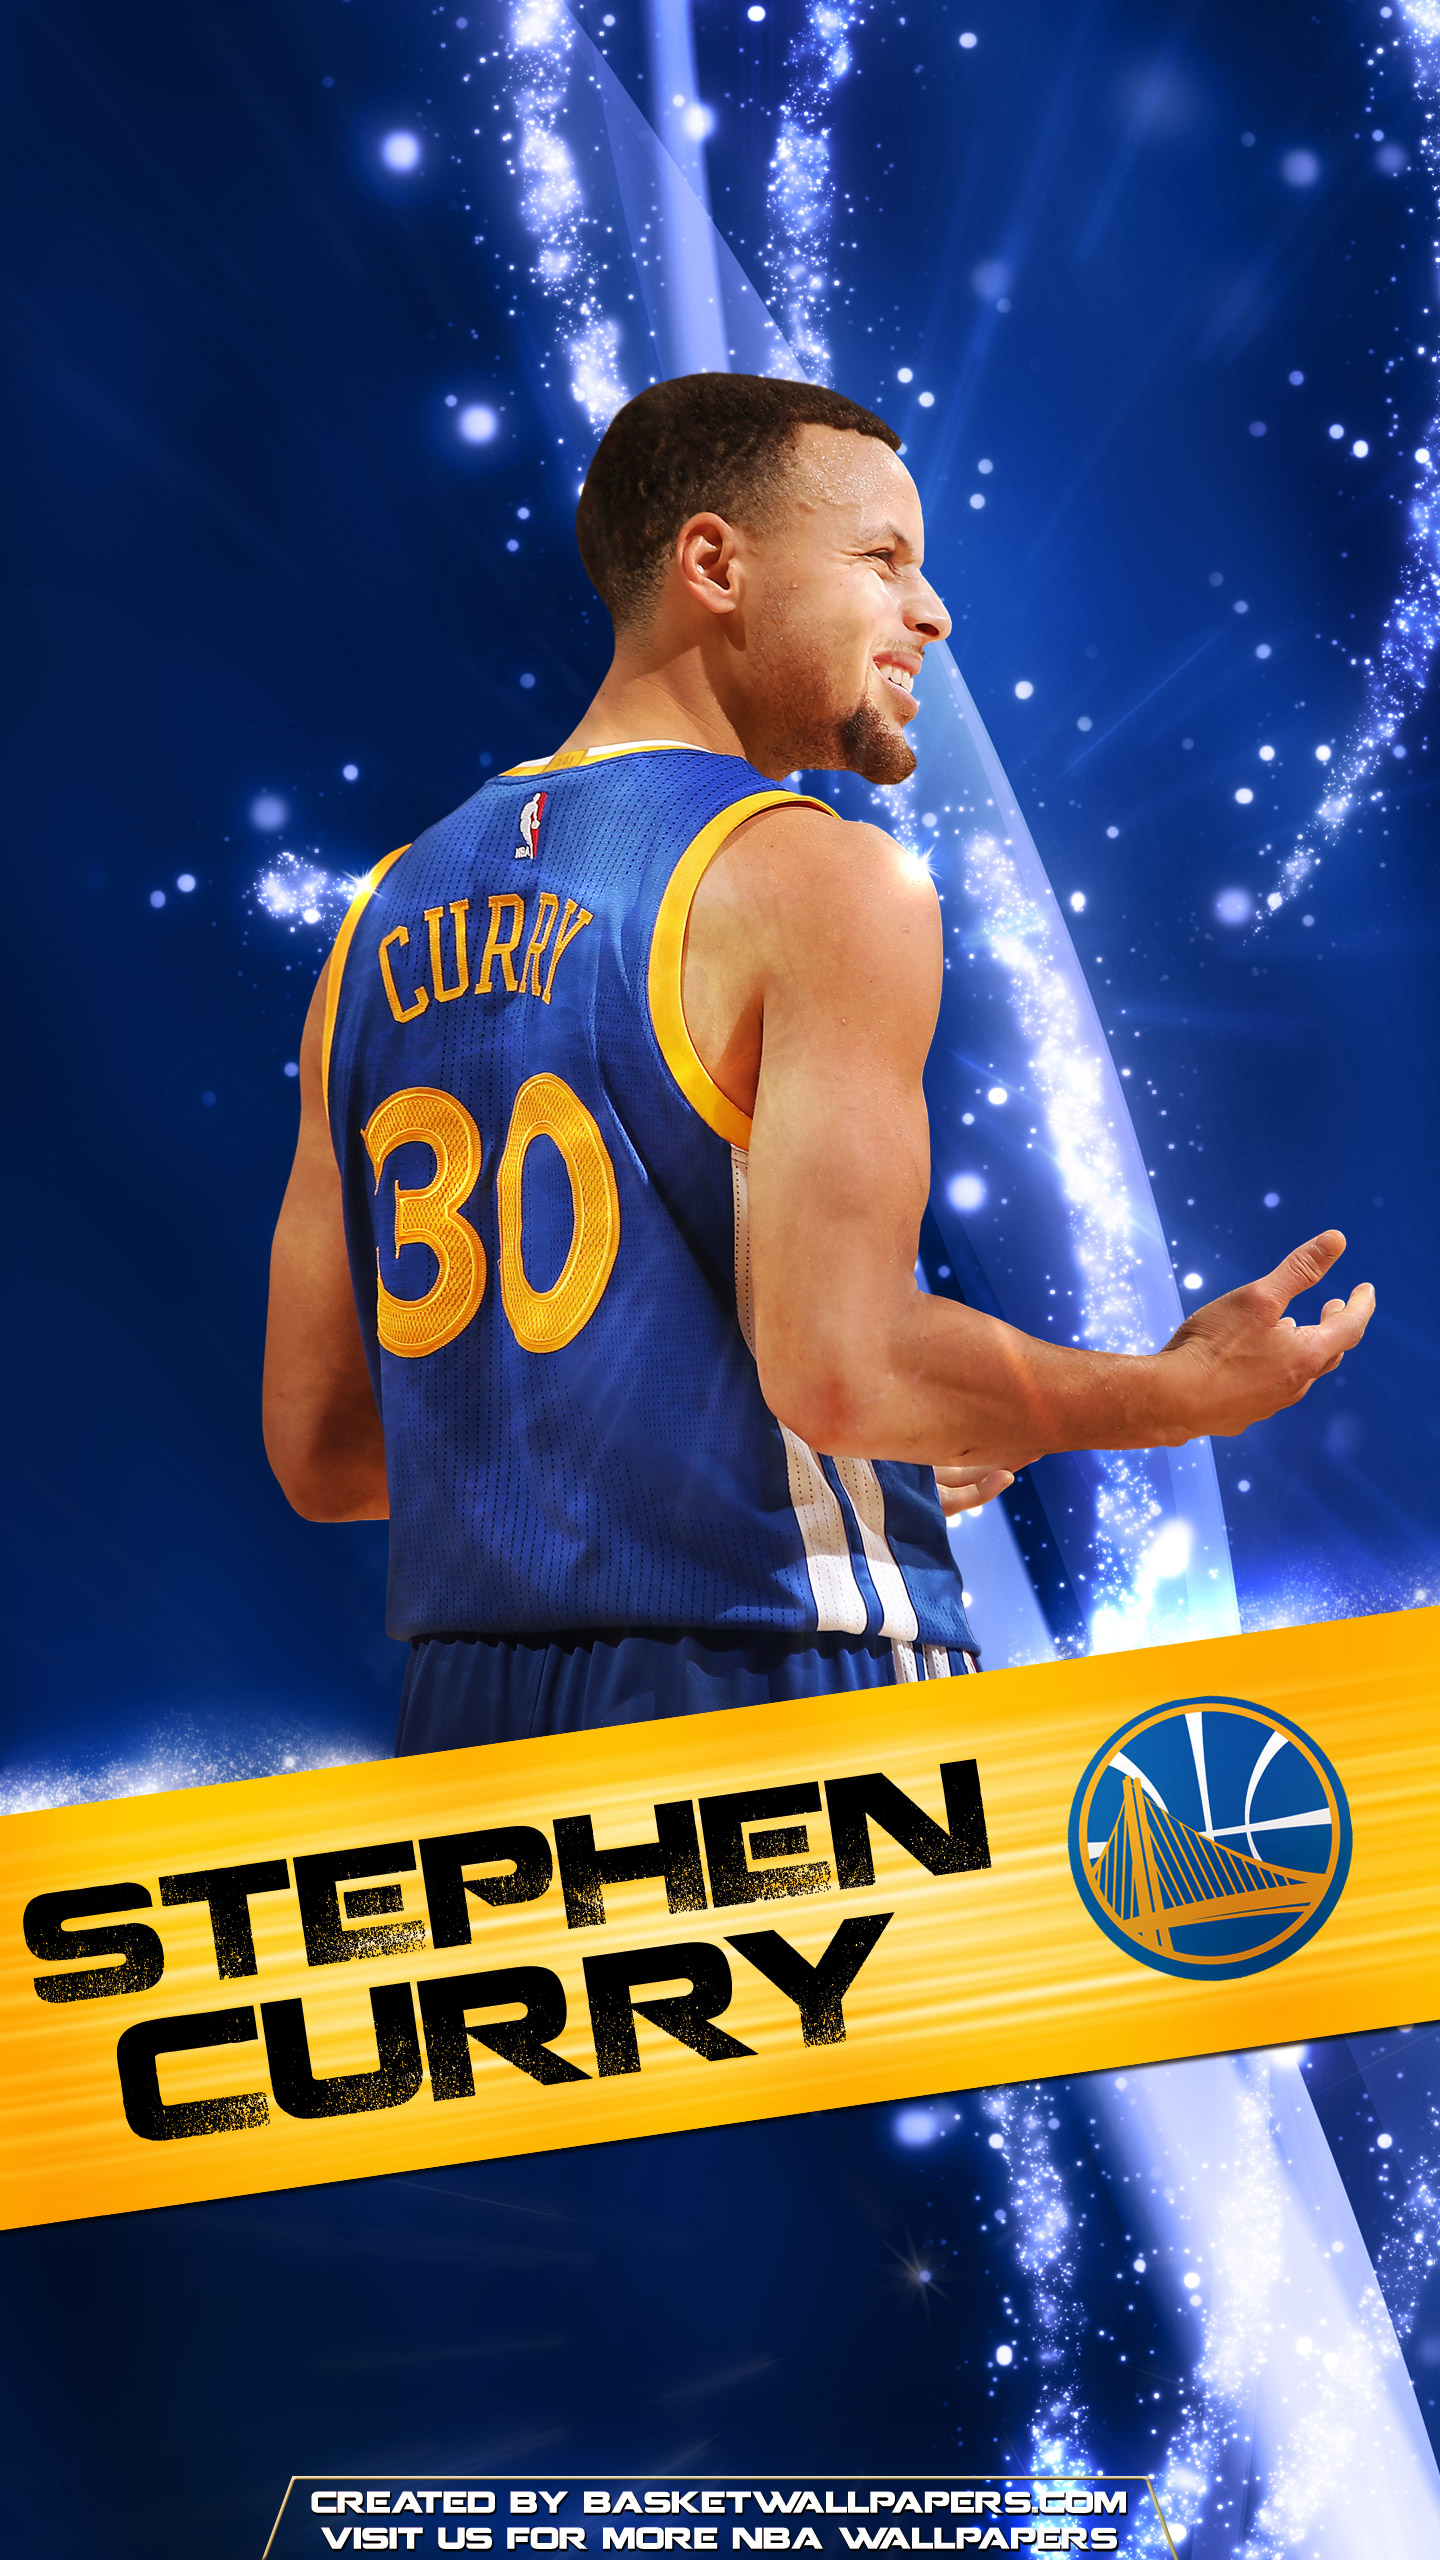 Basketball Live Wallpaper Iphone 6s Stephen Curry Wallpaper For Iphone 2019 Live Wallpaper Hd